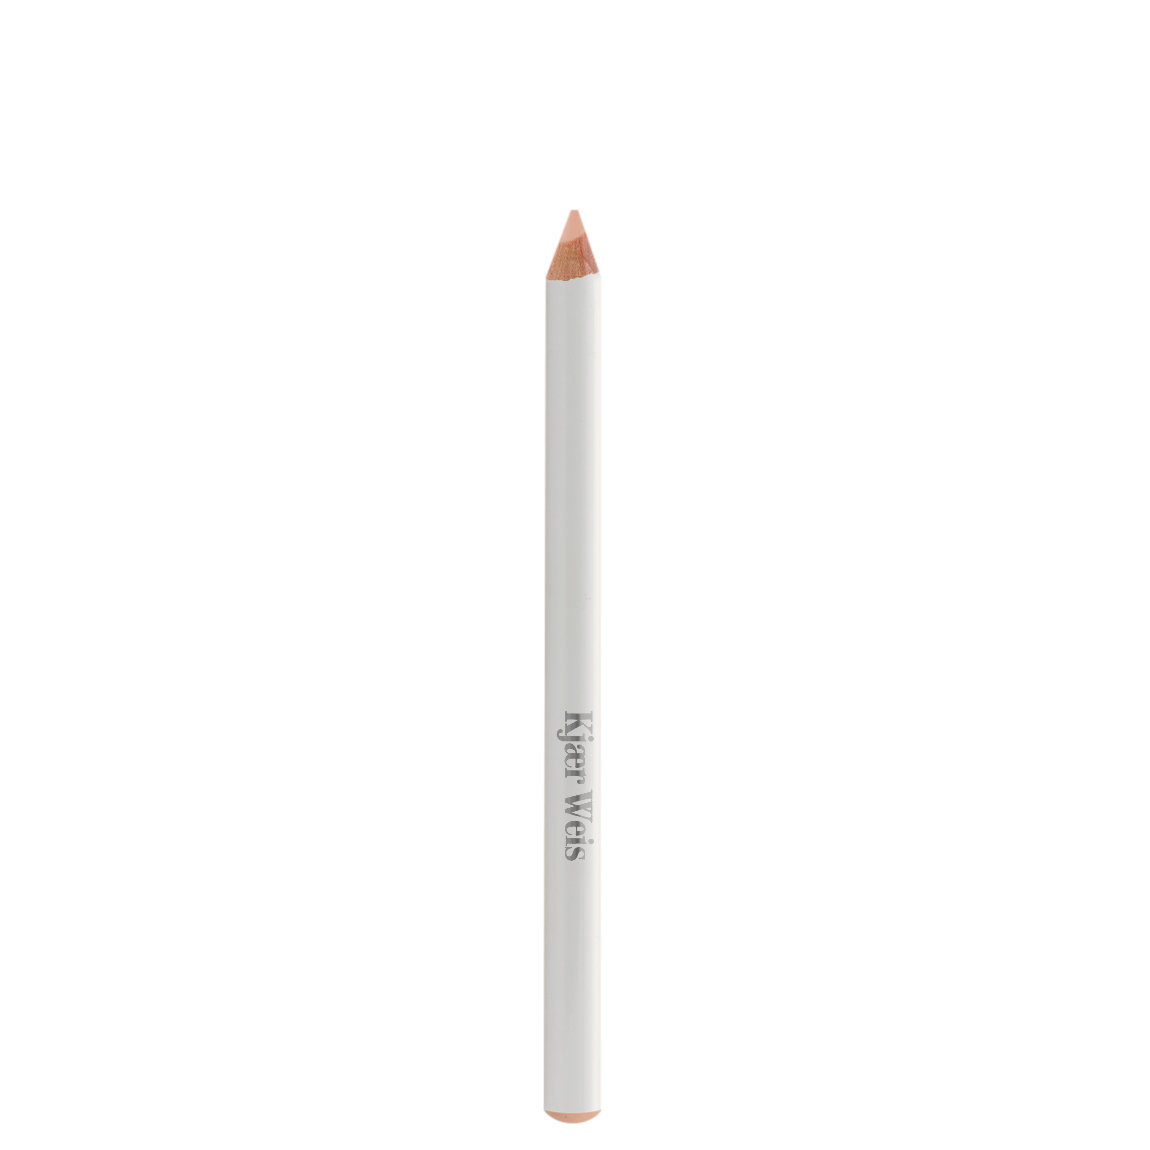 Kjaer Weis Eye Pencil Bright